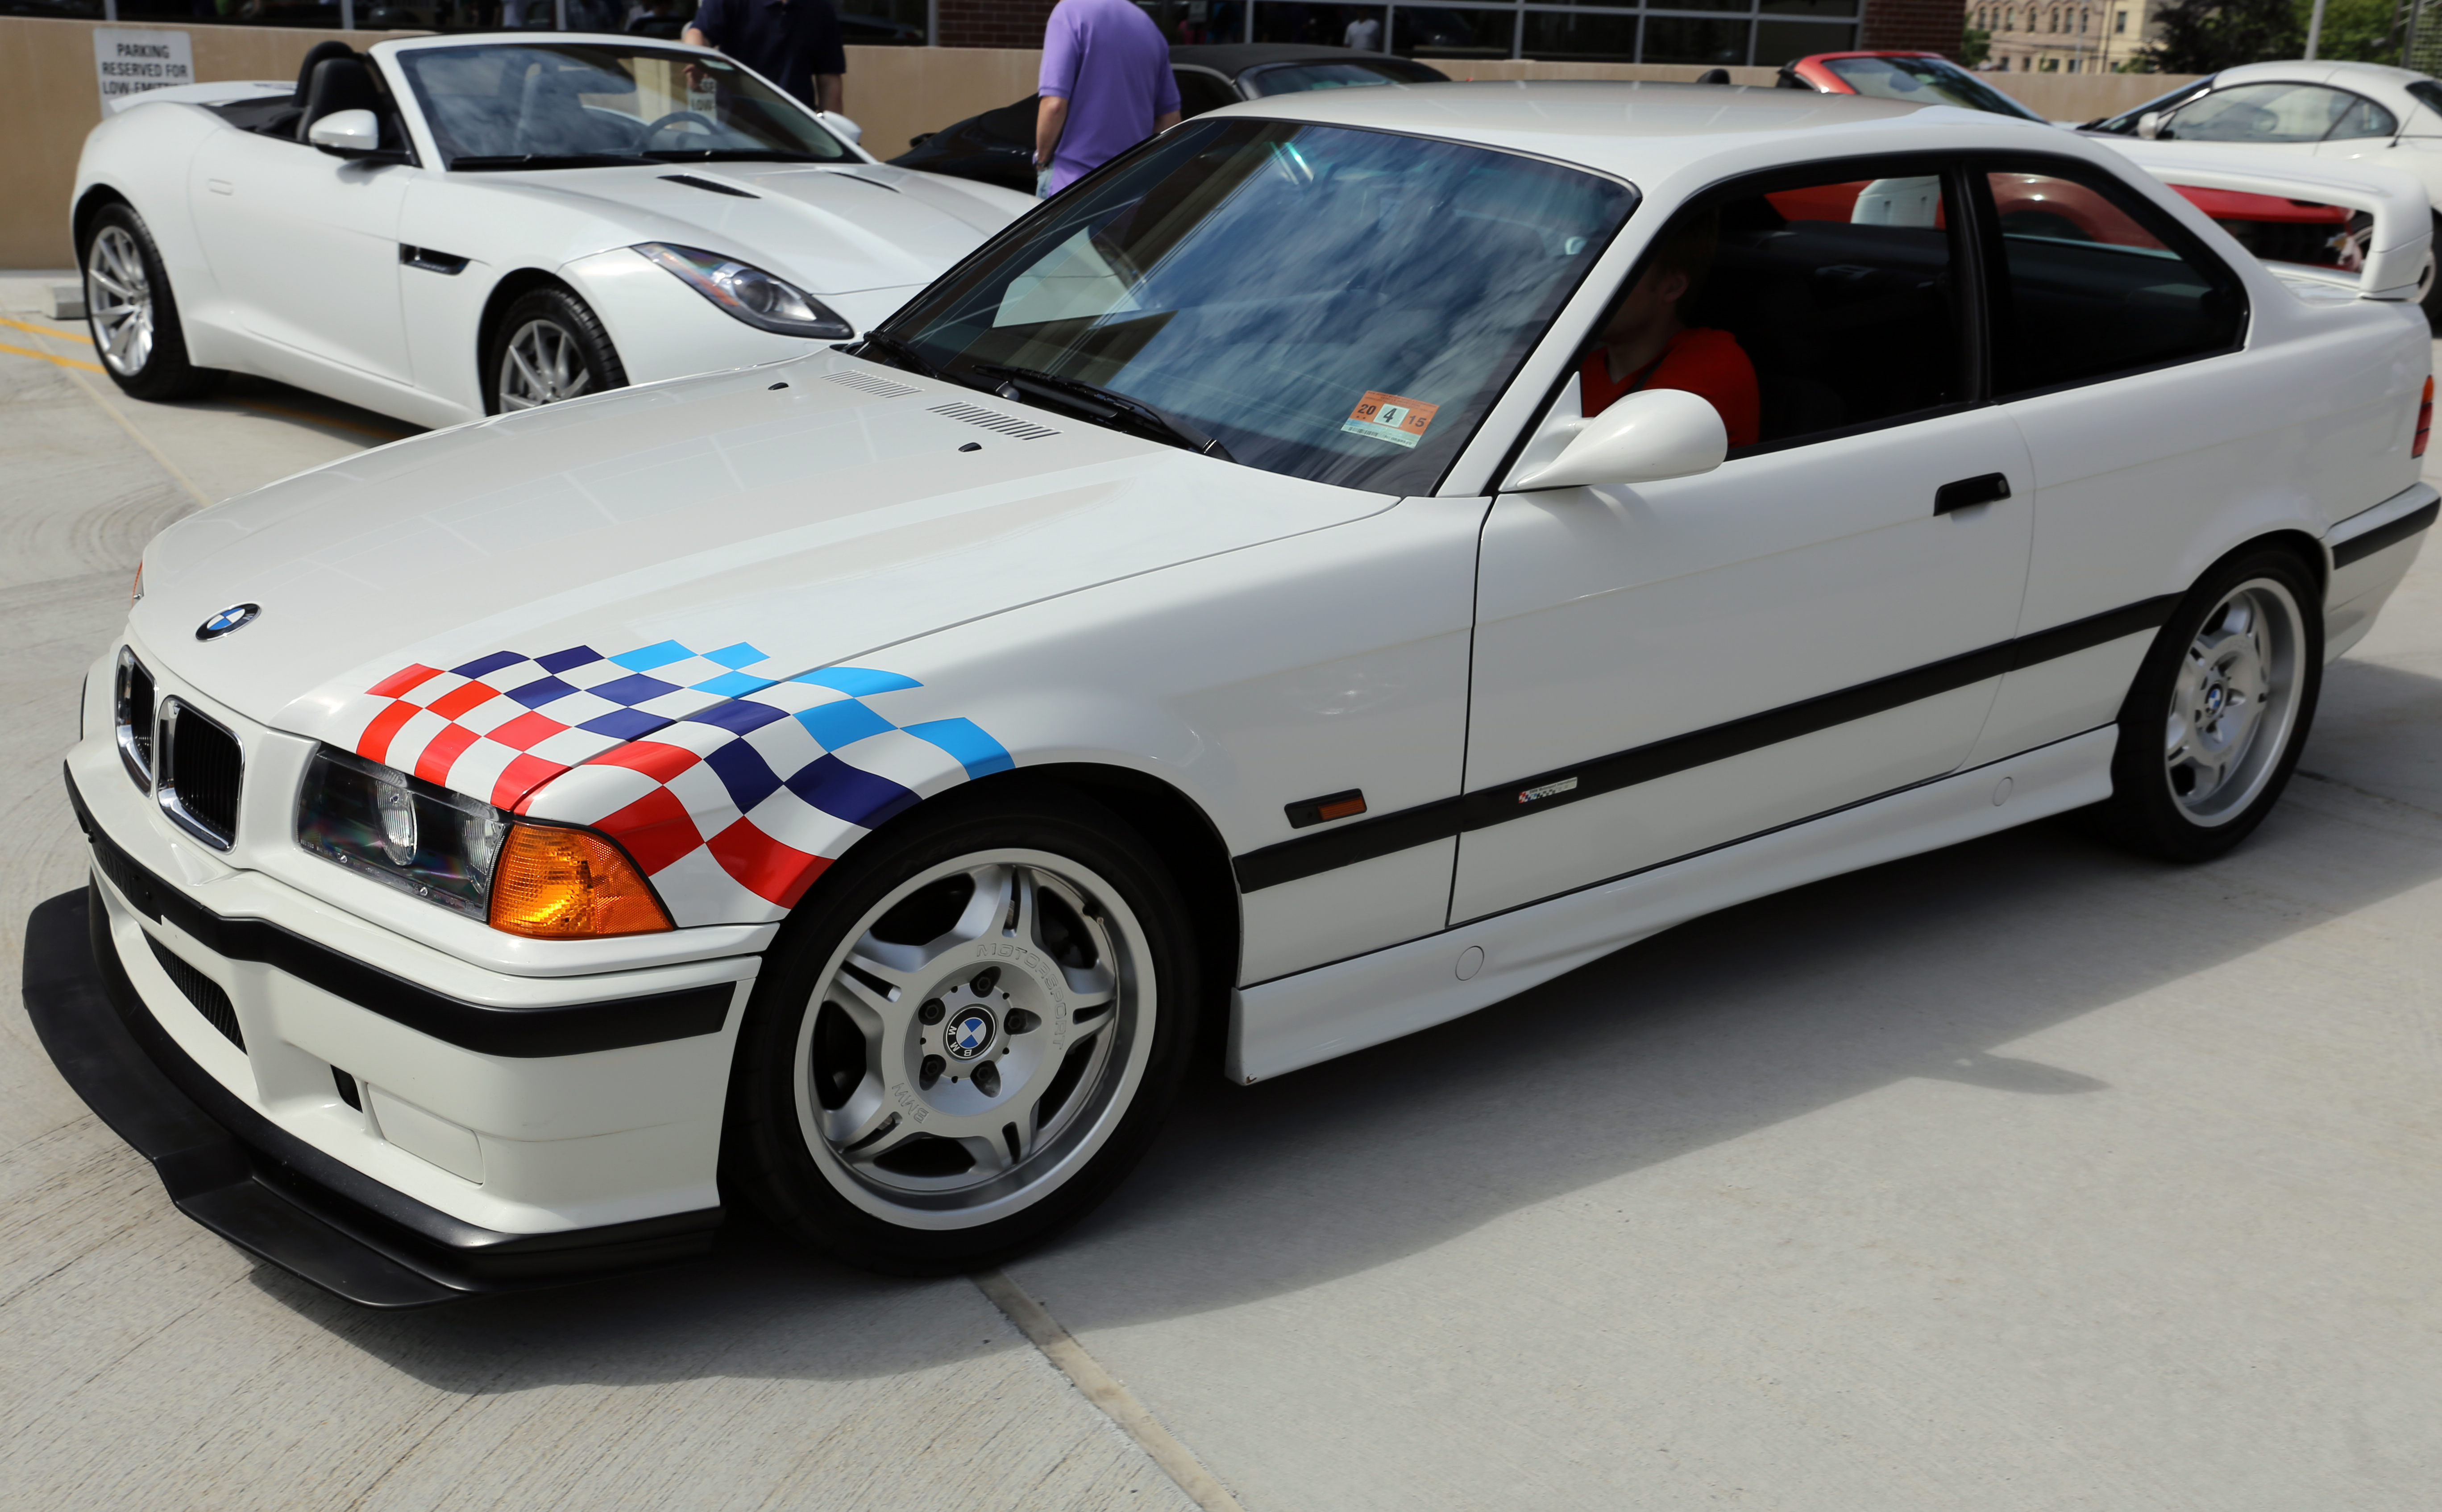 1996 Bmw M3 cabrio (e36) – pictures, information and specs - Auto ...